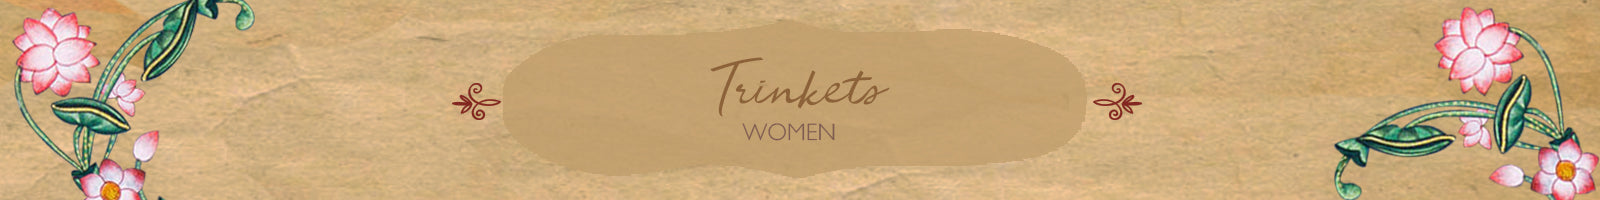 Authentic Handcrafted Trinkets by The India Craft House